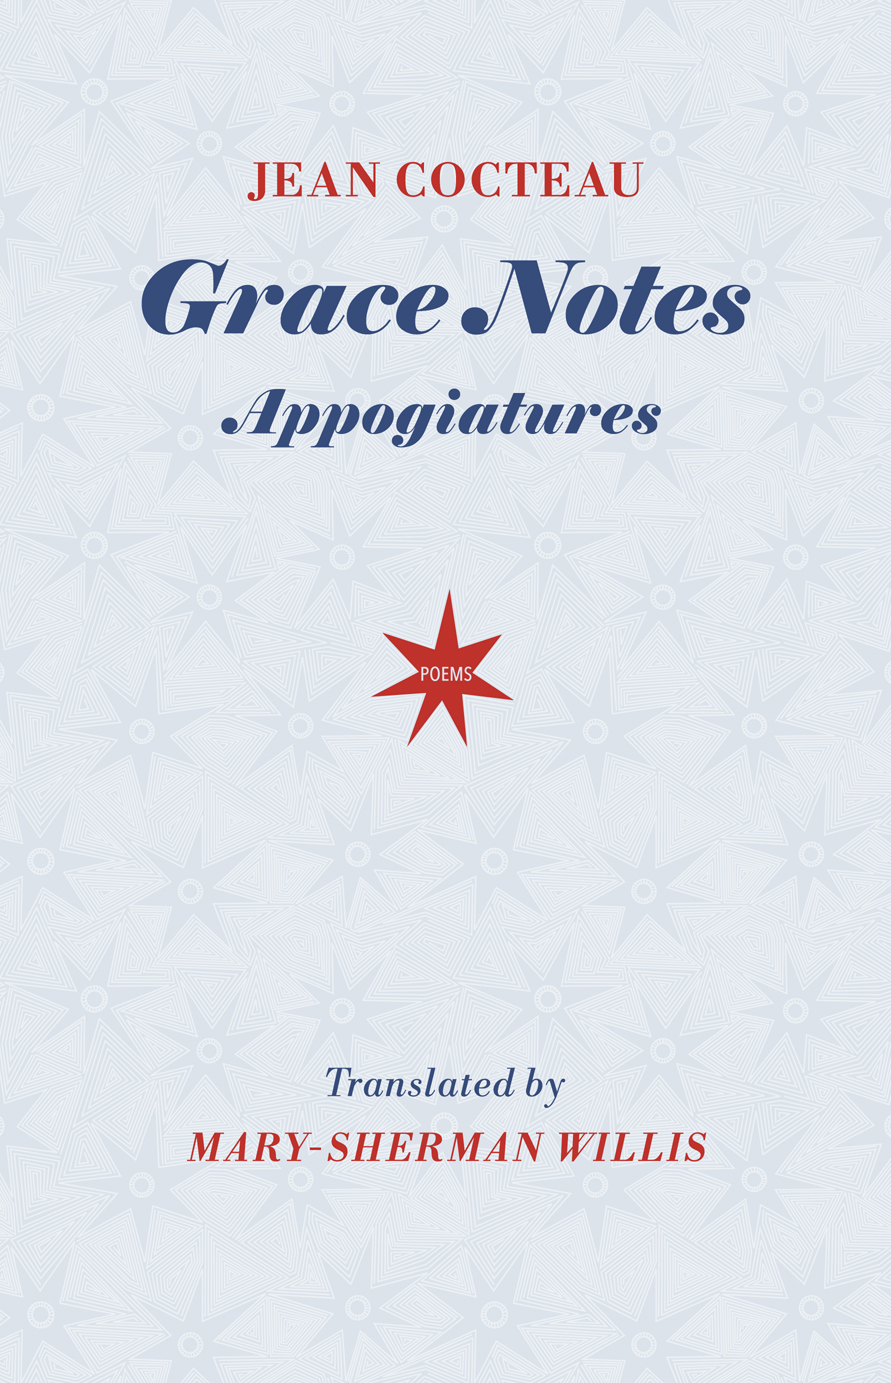 Grace Notes: Appogiatures